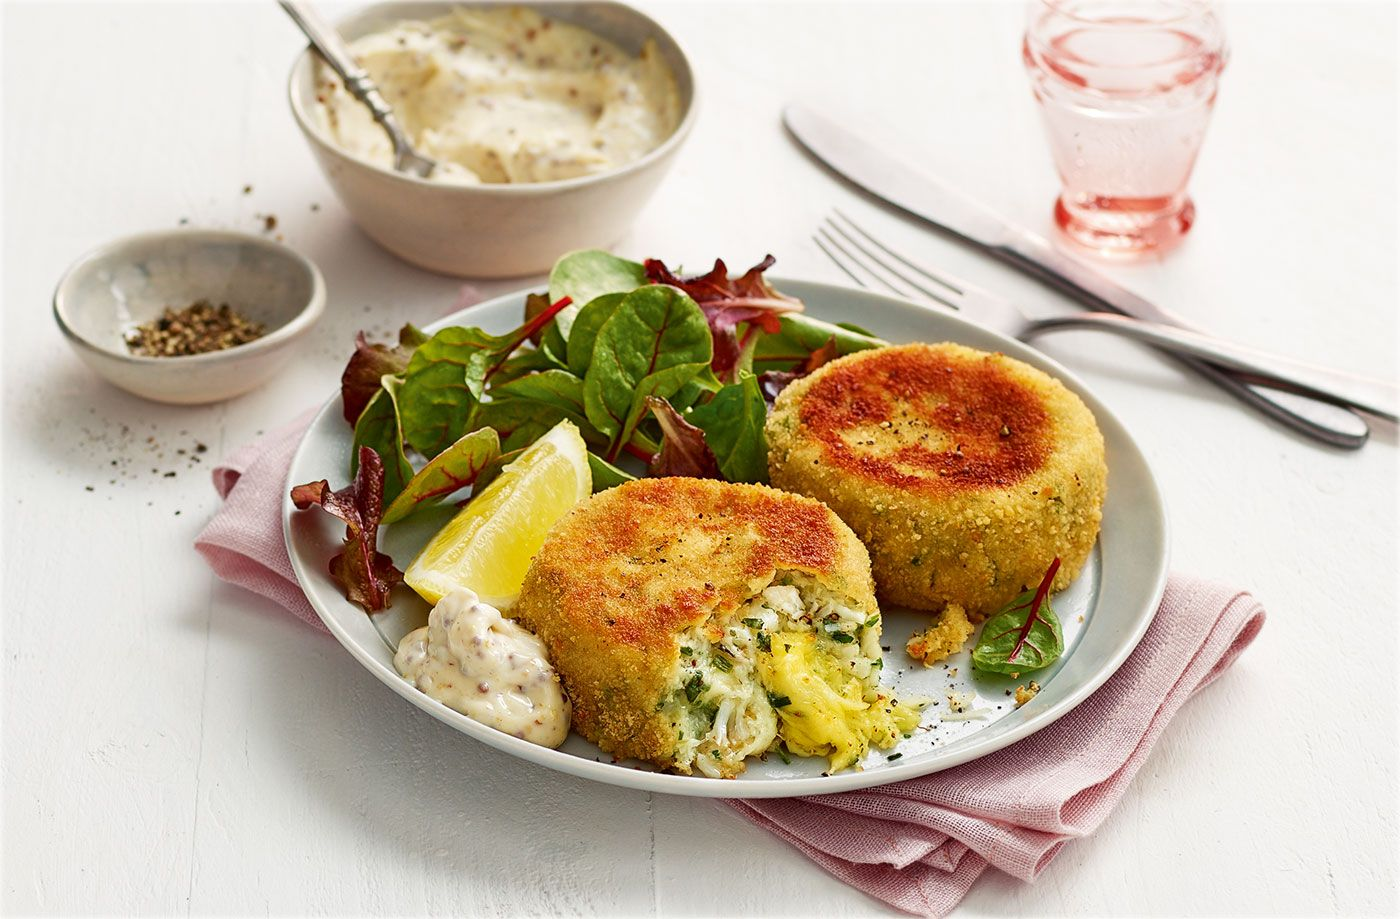 Janes fishcakes for two or one recipe fishcakes fishcake janes fishcakes for two or one recipe fishcakes fishcake and real foods forumfinder Image collections